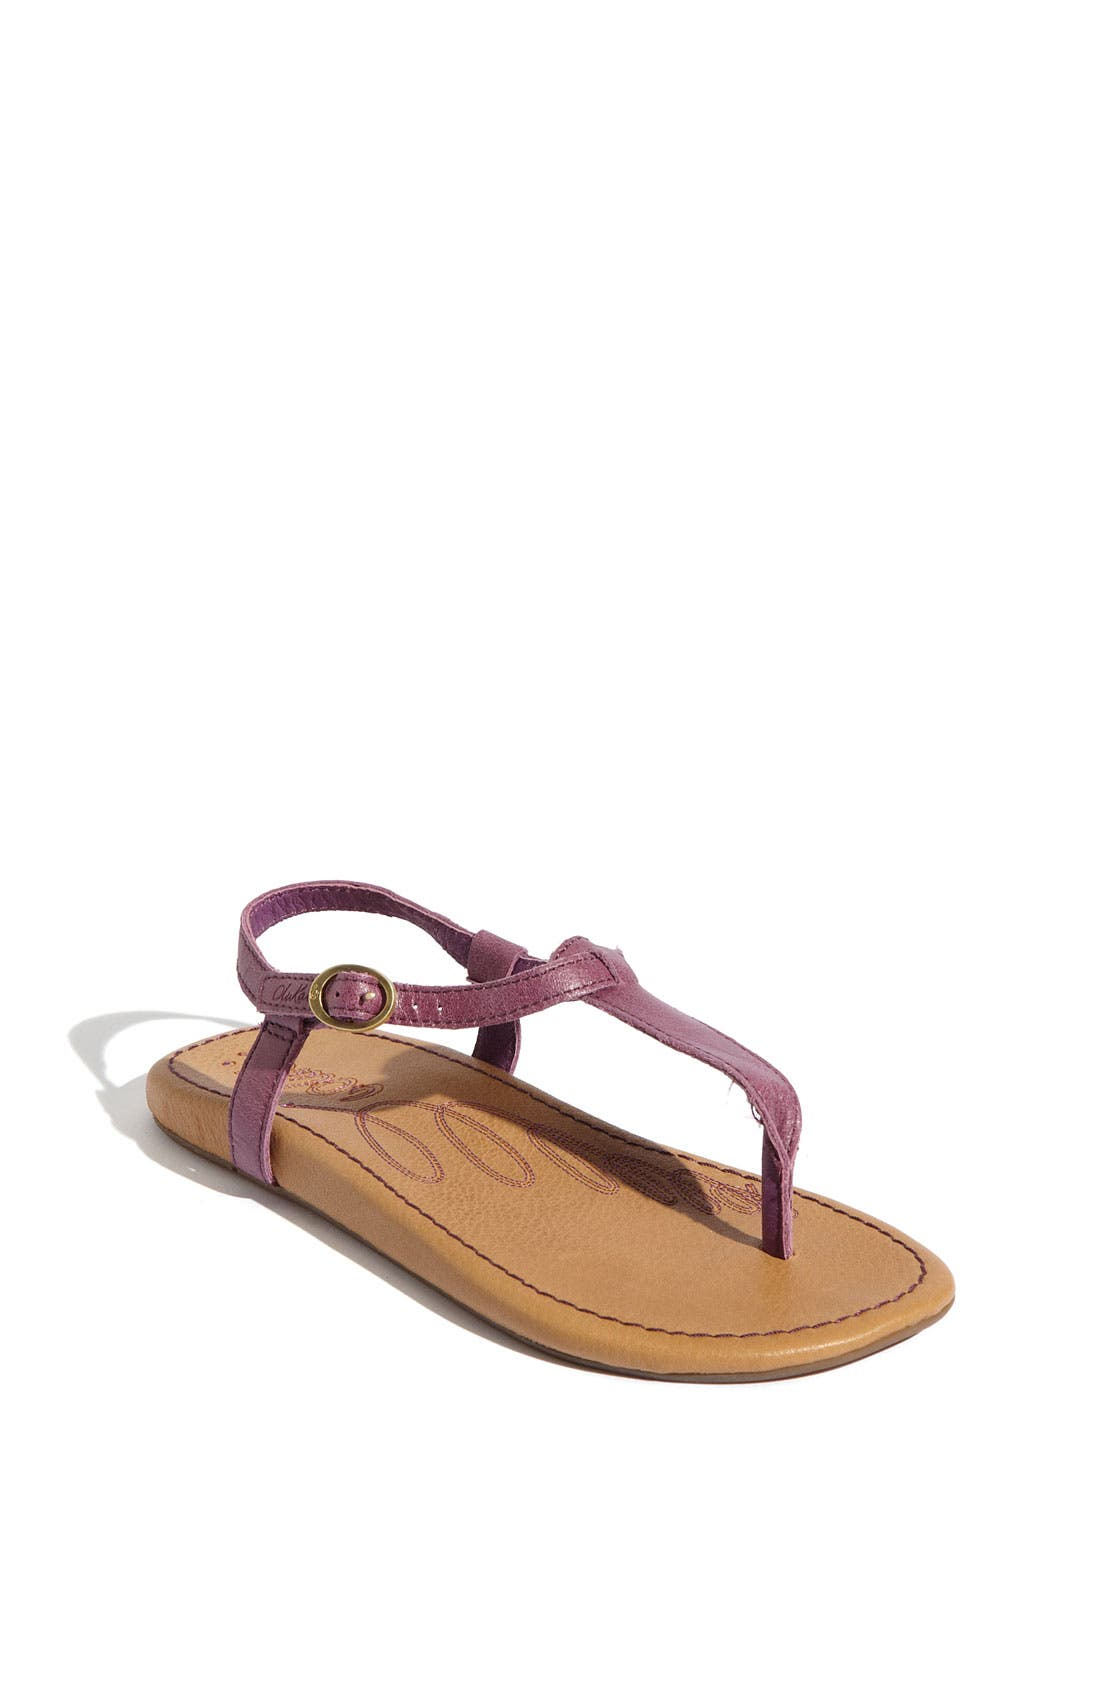 Alternate Image 1 Selected - OluKai 'Anela' Sandal (Toddler, Little Kid & Big Kid)